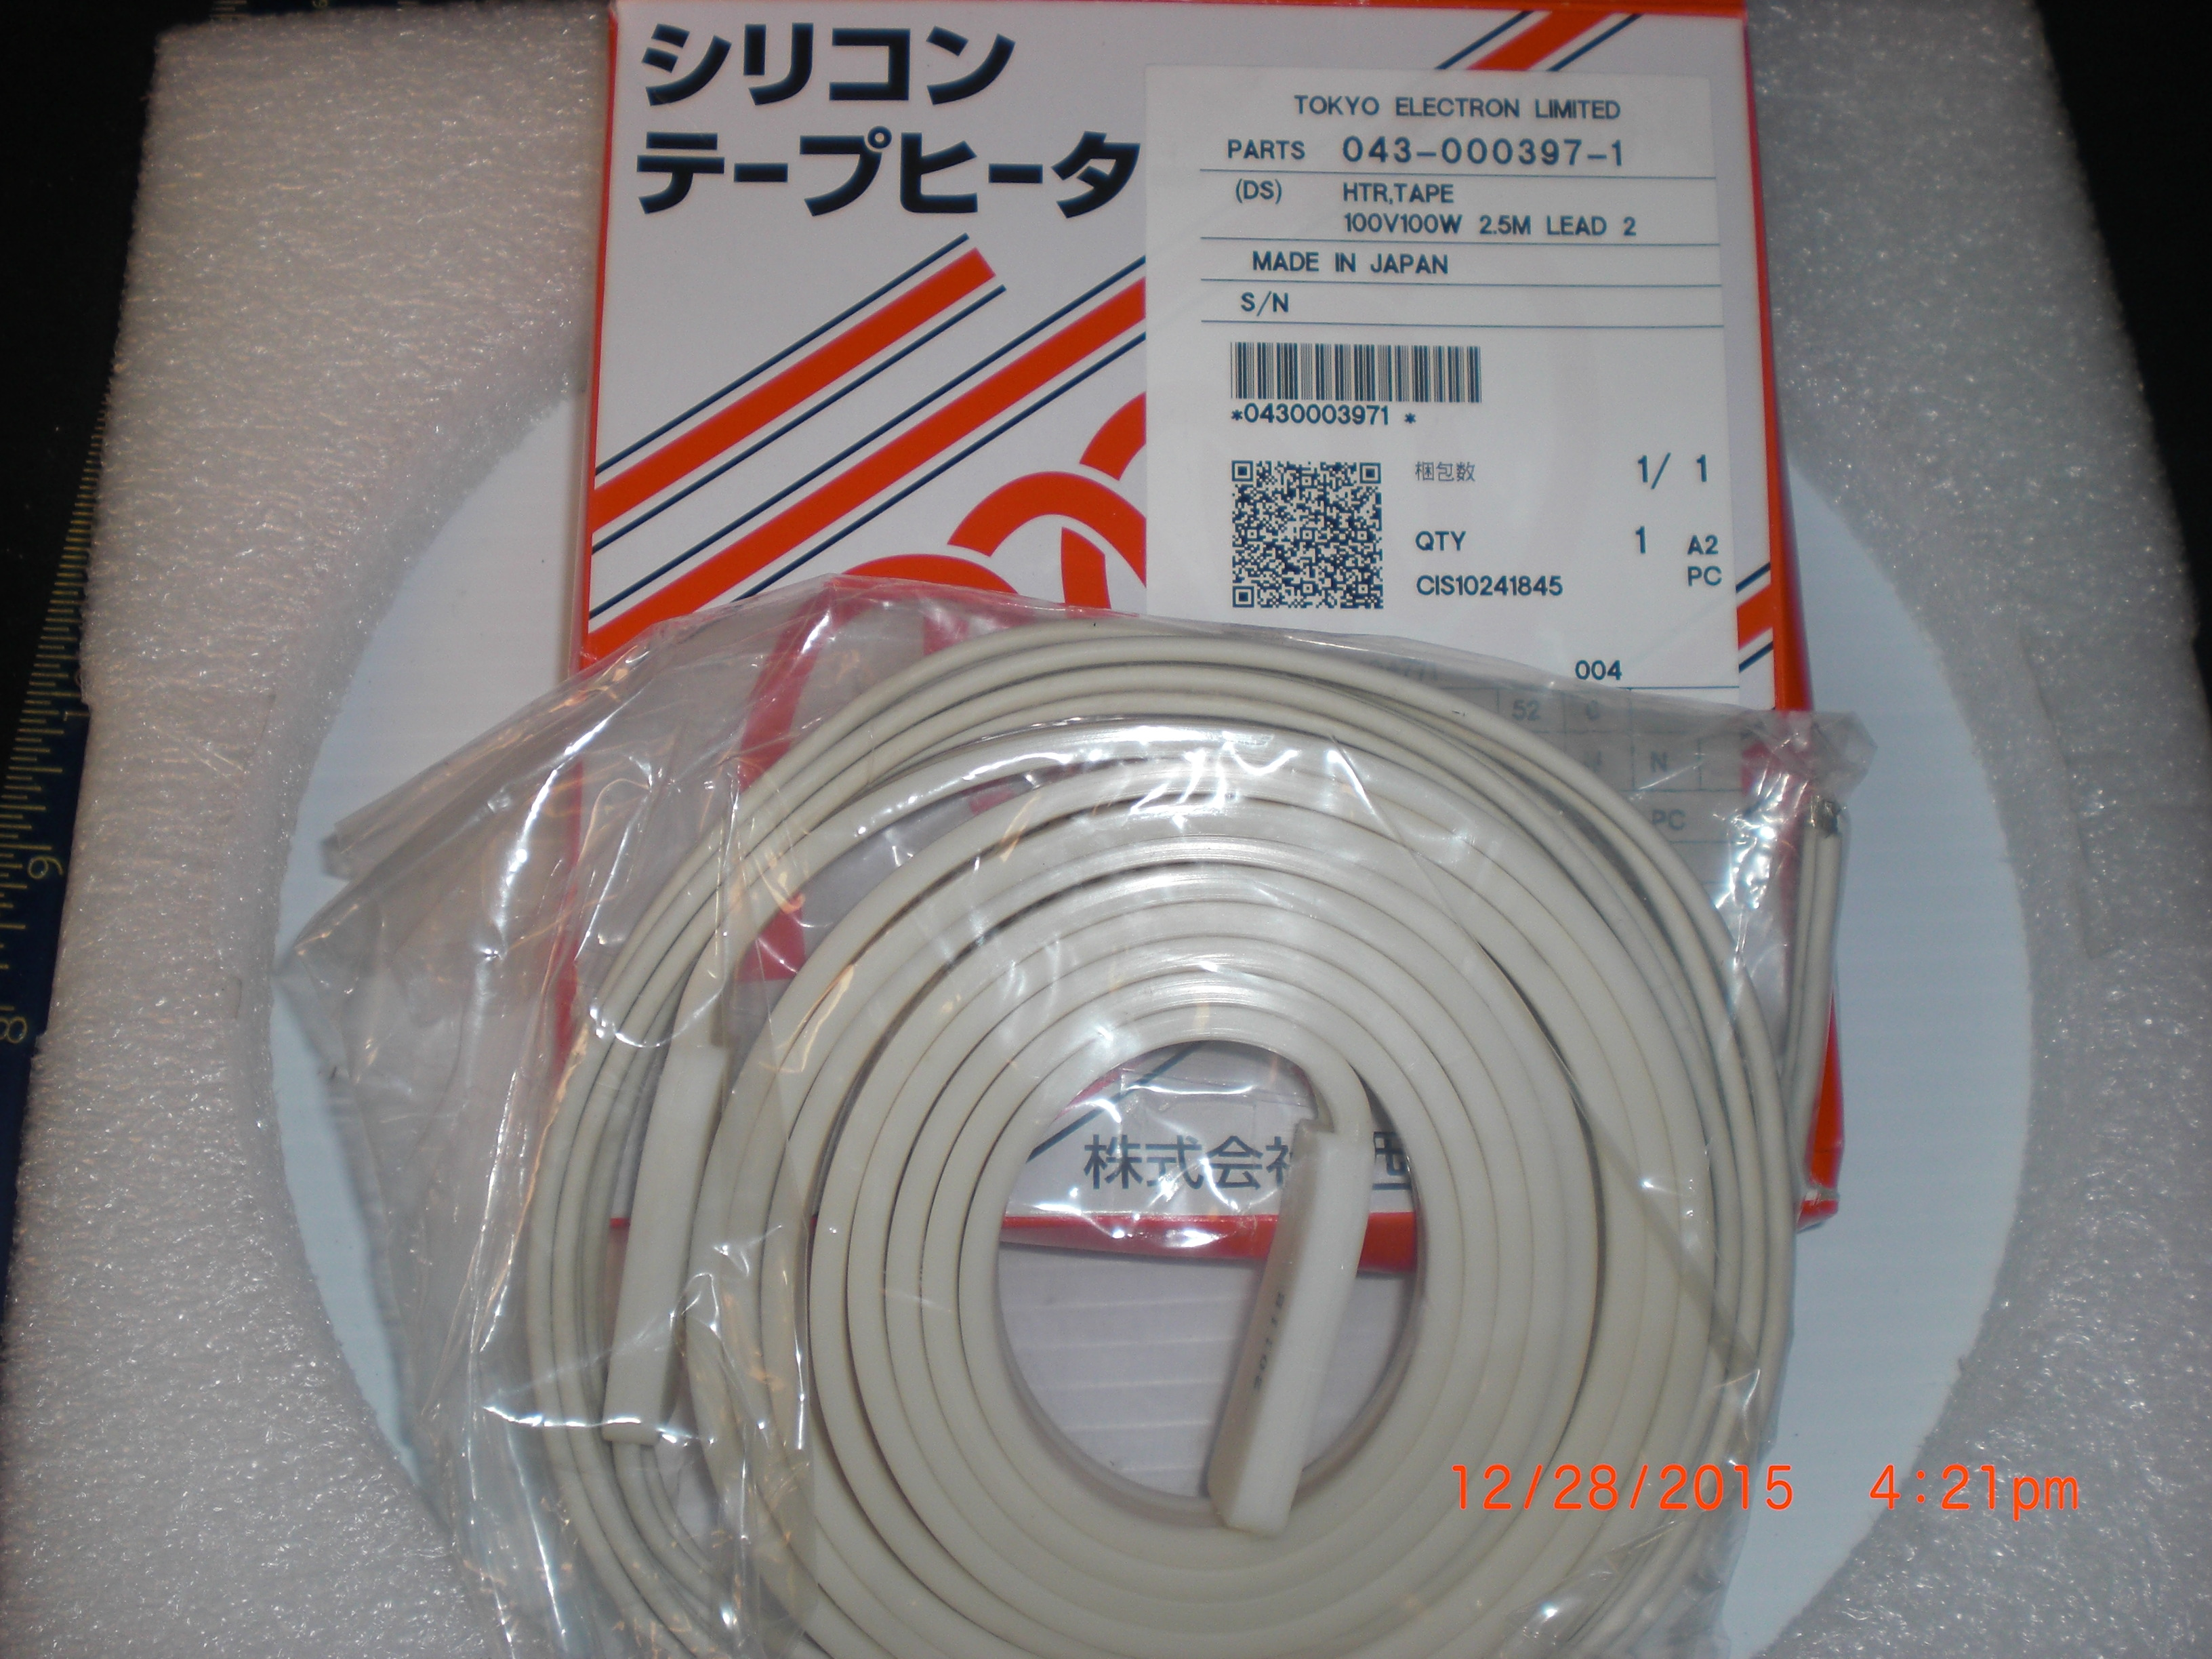 Heater tape silicon 100V 120W   8 ft element (TEL) DS043-000297-1